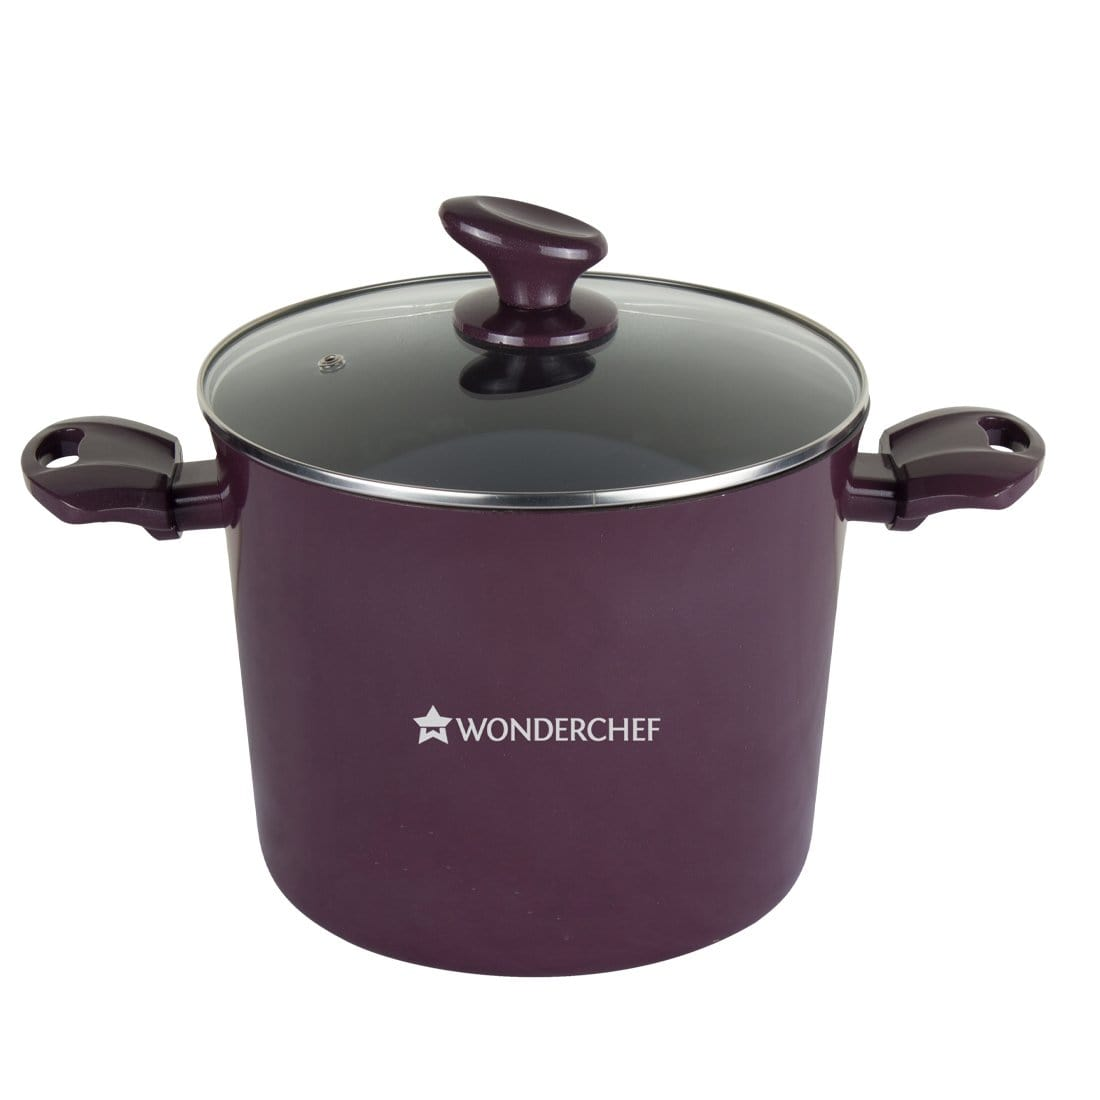 Wonderchef Everest 24Cm Casseroles With Lid - 7.75L